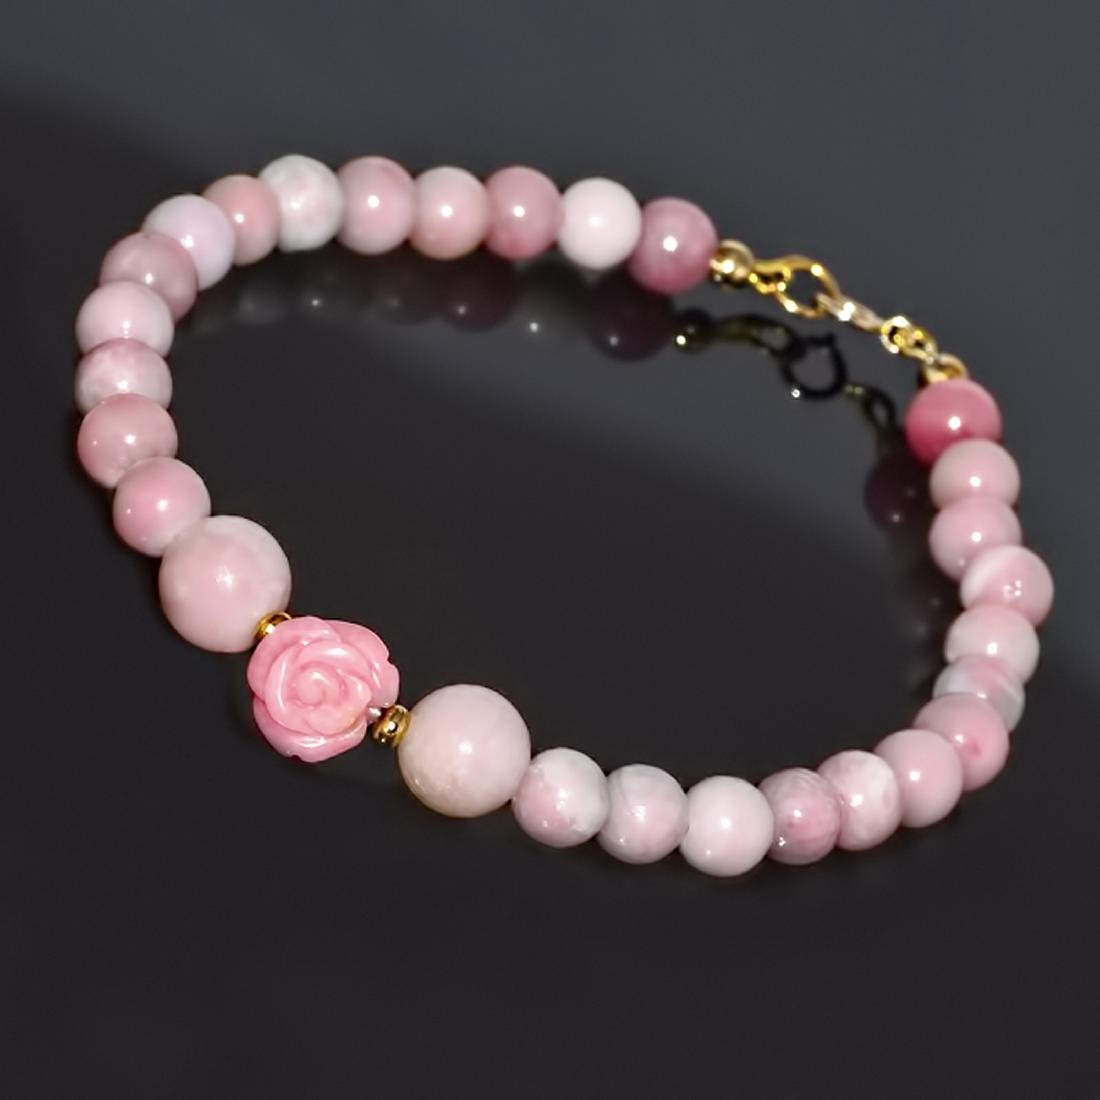 Pink Opal and 'Rose' Coral Classic Bracelet - 3